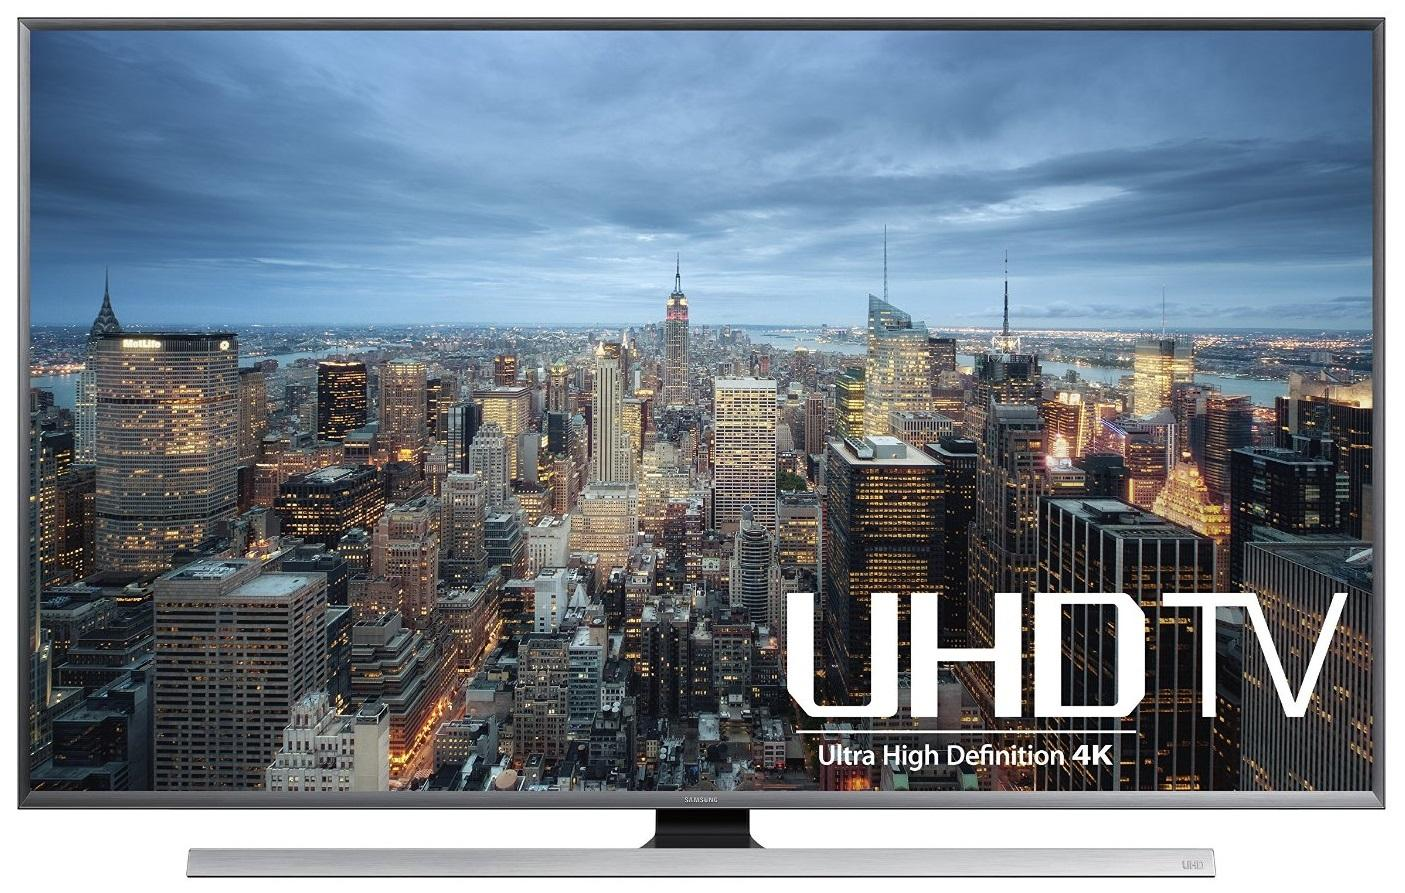 $2599 Free Shipping Samsung 75-Inch 4K UltraHD Smart LED TV UN75JU6500